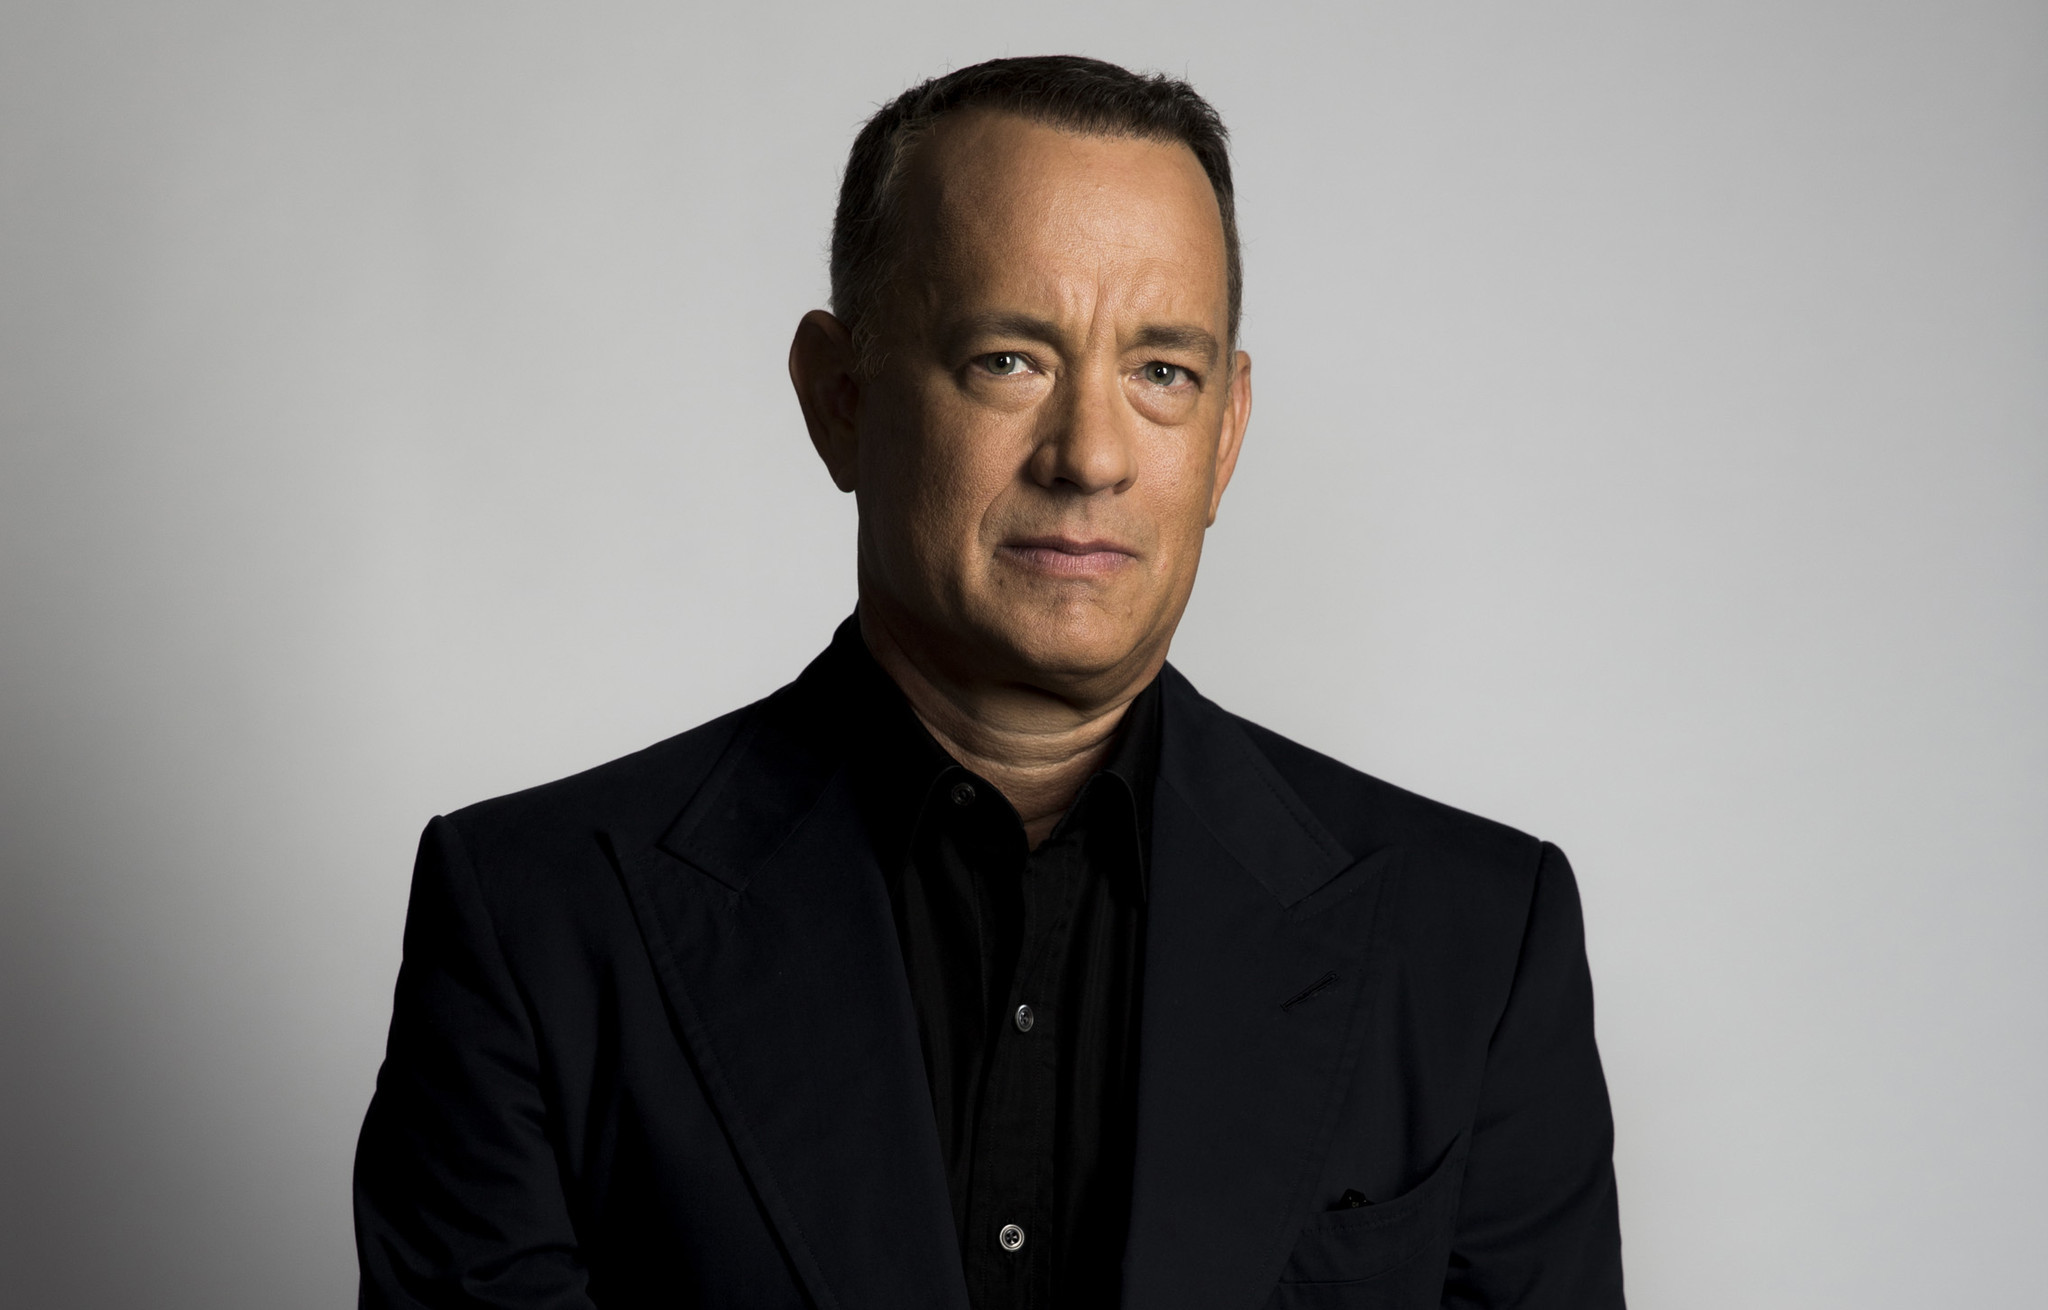 tom hanks terminaltom hanks movies, tom hanks films, tom hanks filmleri, tom hanks 2016, tom hanks twitter, tom hanks sully, tom hanks wiki, tom hanks instagram, tom hanks wife, tom hanks young, tom hanks 2017, tom hanks wilson, tom hanks height, tom hanks terminal, tom hanks imdb, tom hanks oscar, tom hanks cast away, tom hanks net worth, tom hanks movies 2016, tom hanks inferno